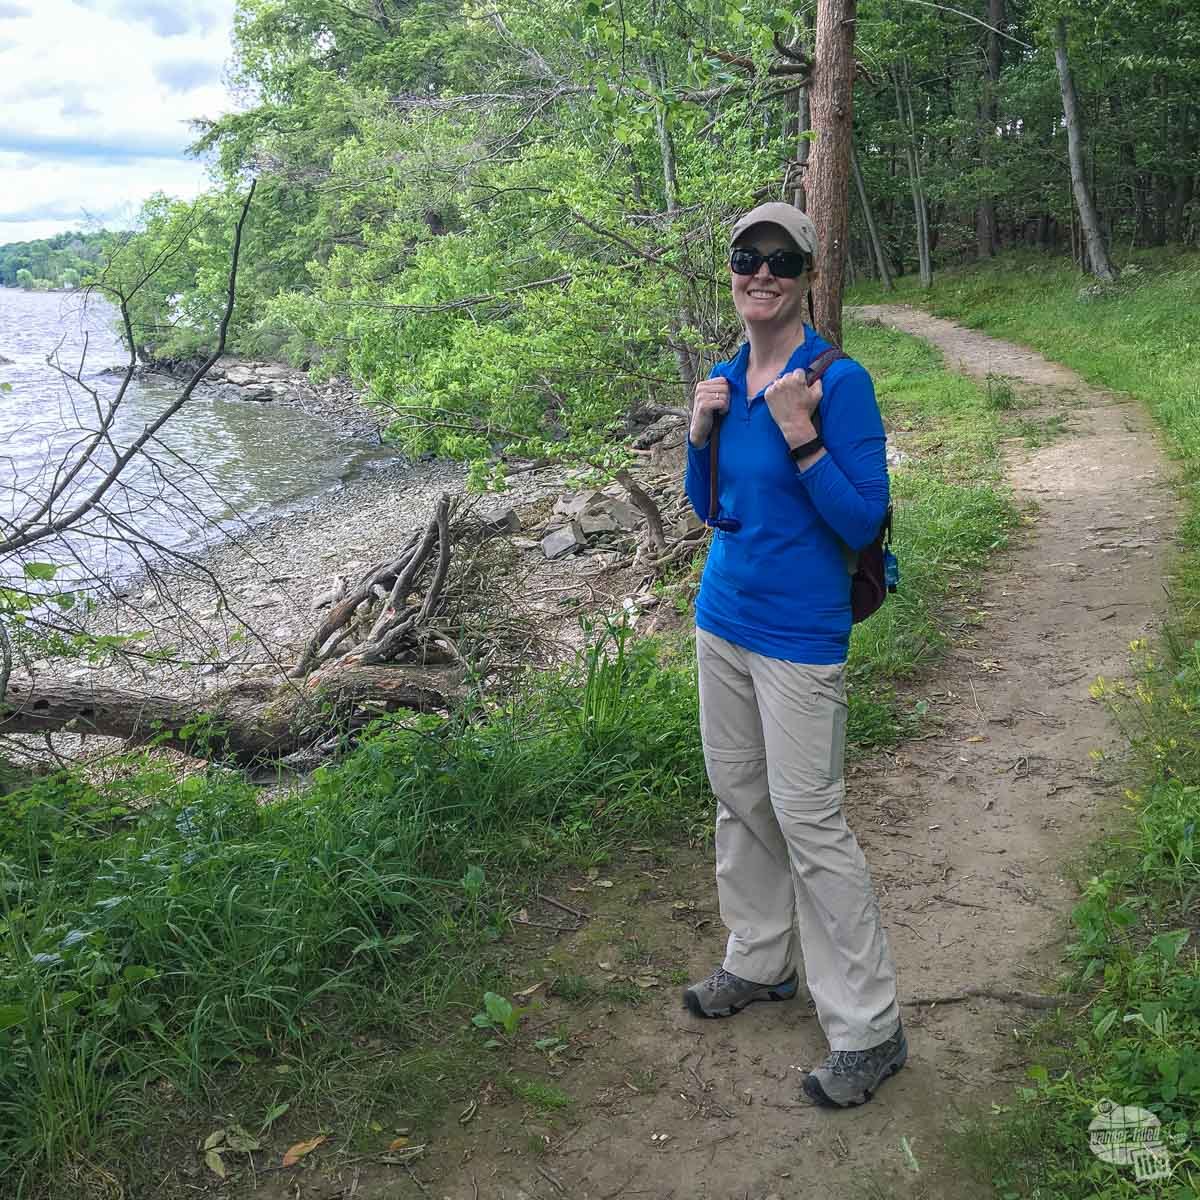 Bonnie on the trail along the Hudson River.